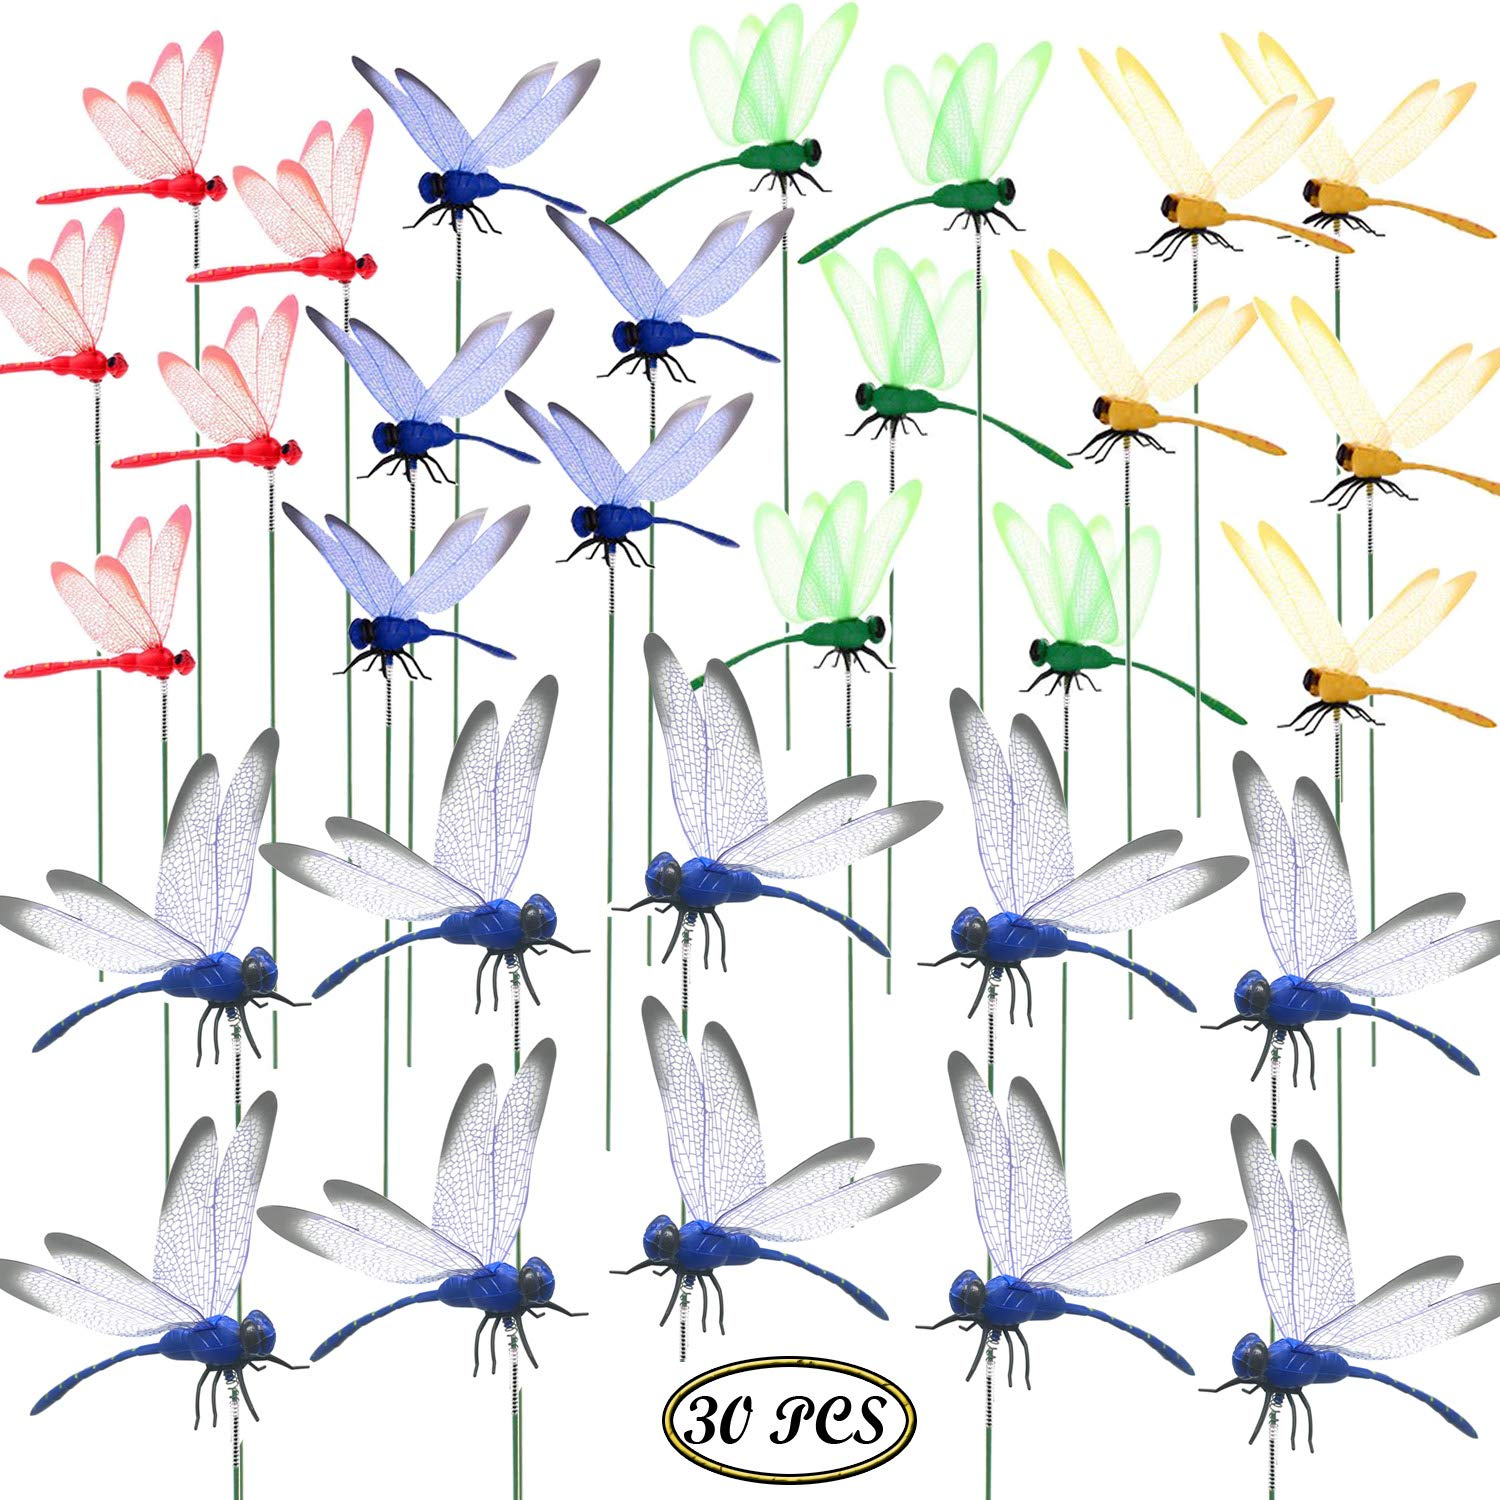 Seasonsky 30 PCS Dragonfly Garden Stakes, 2 Size Artificial Dragonfly Stakes Indoor Outdoor Yard Garden Flower Pot Decoration, Miniature Fairy Garden Decoration